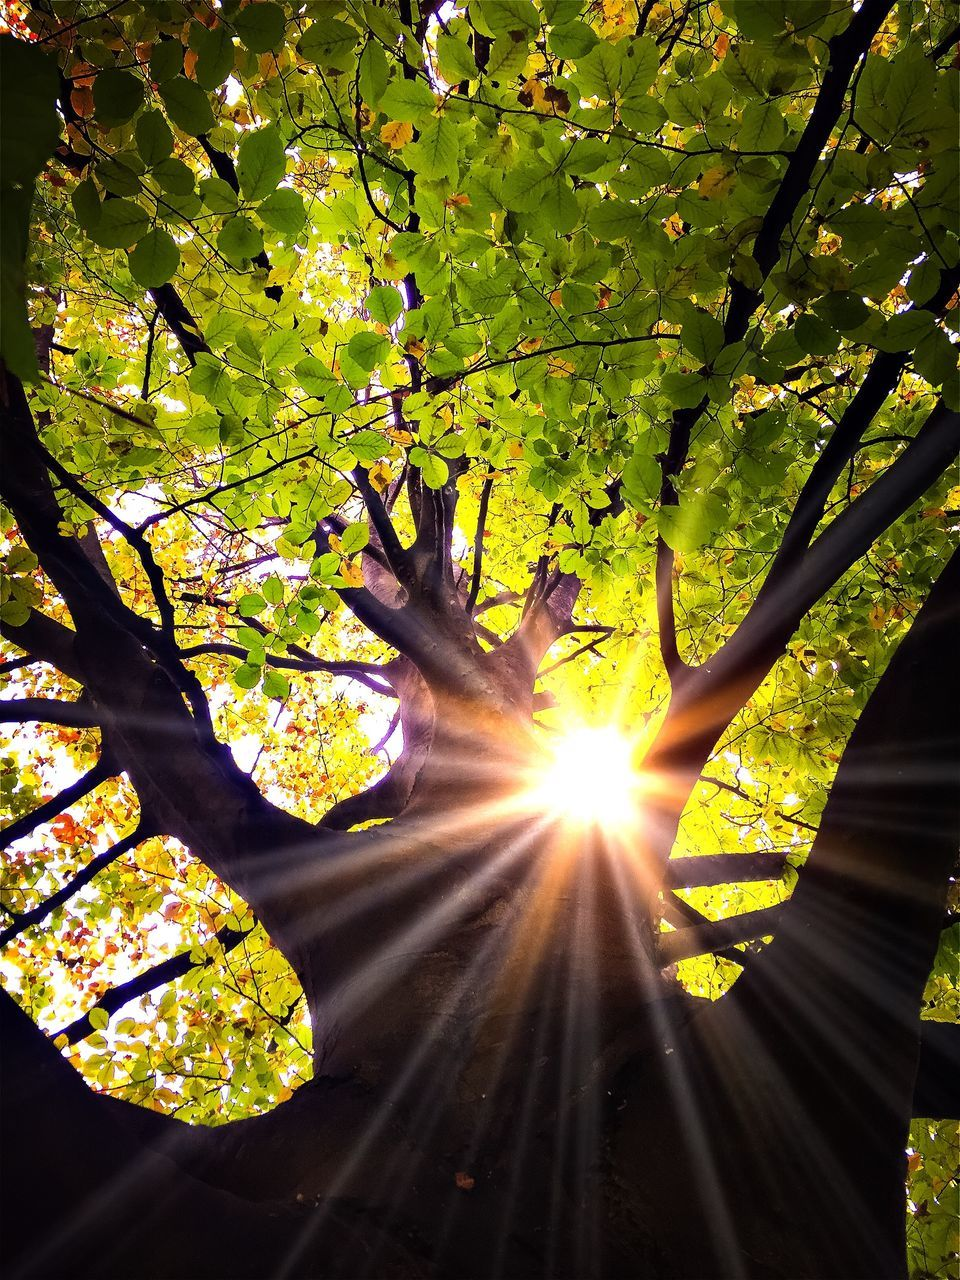 tree, nature, growth, sunlight, branch, beauty in nature, leaf, sun, day, outdoors, human hand, one person